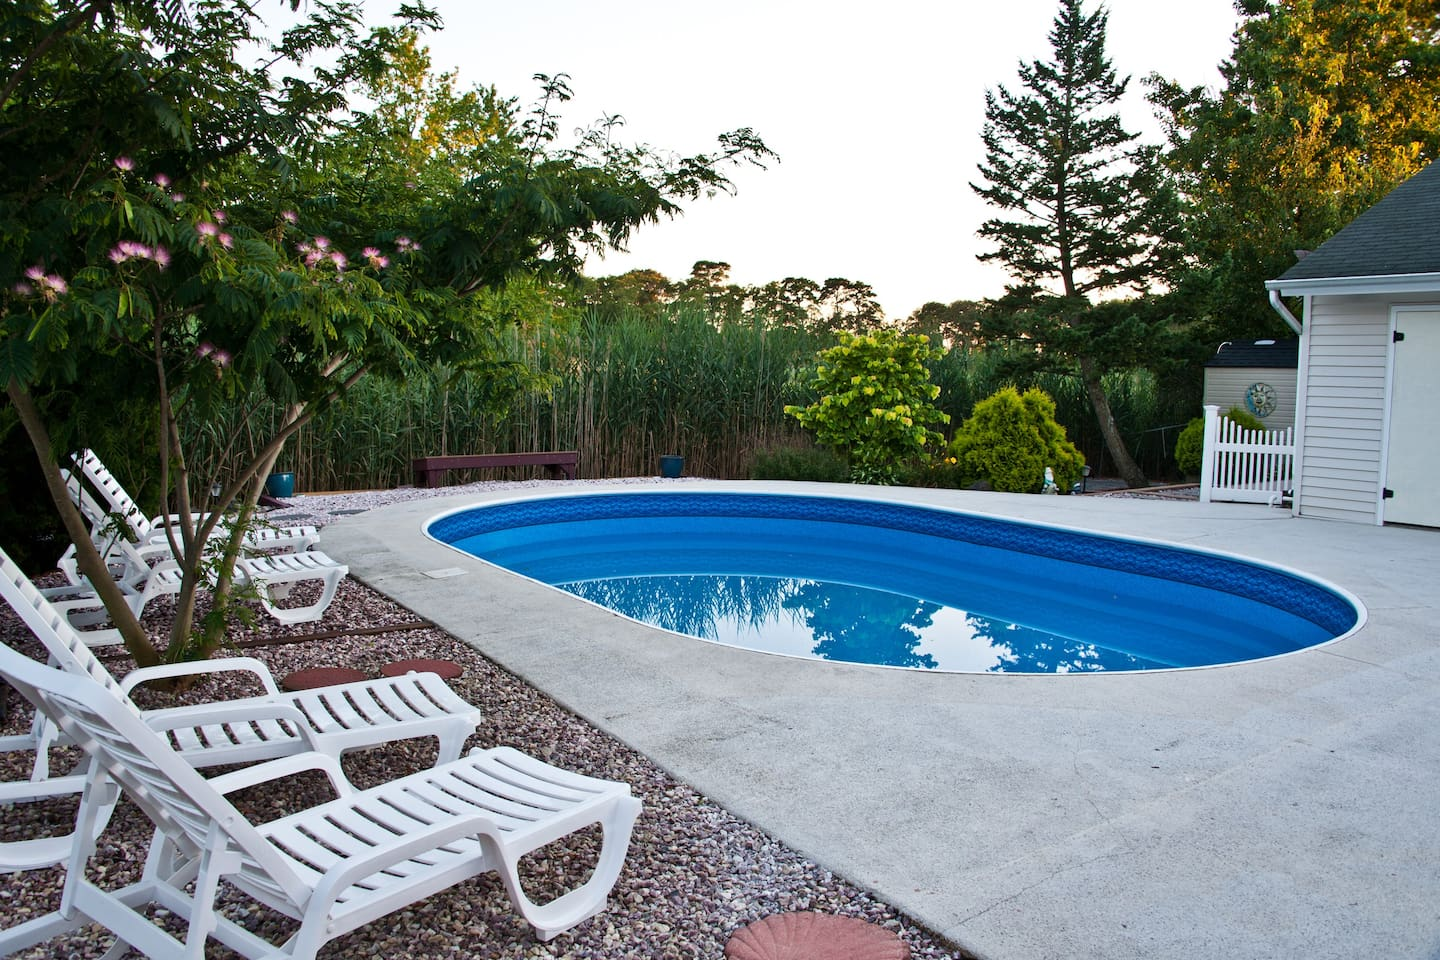 Pool in garden setting